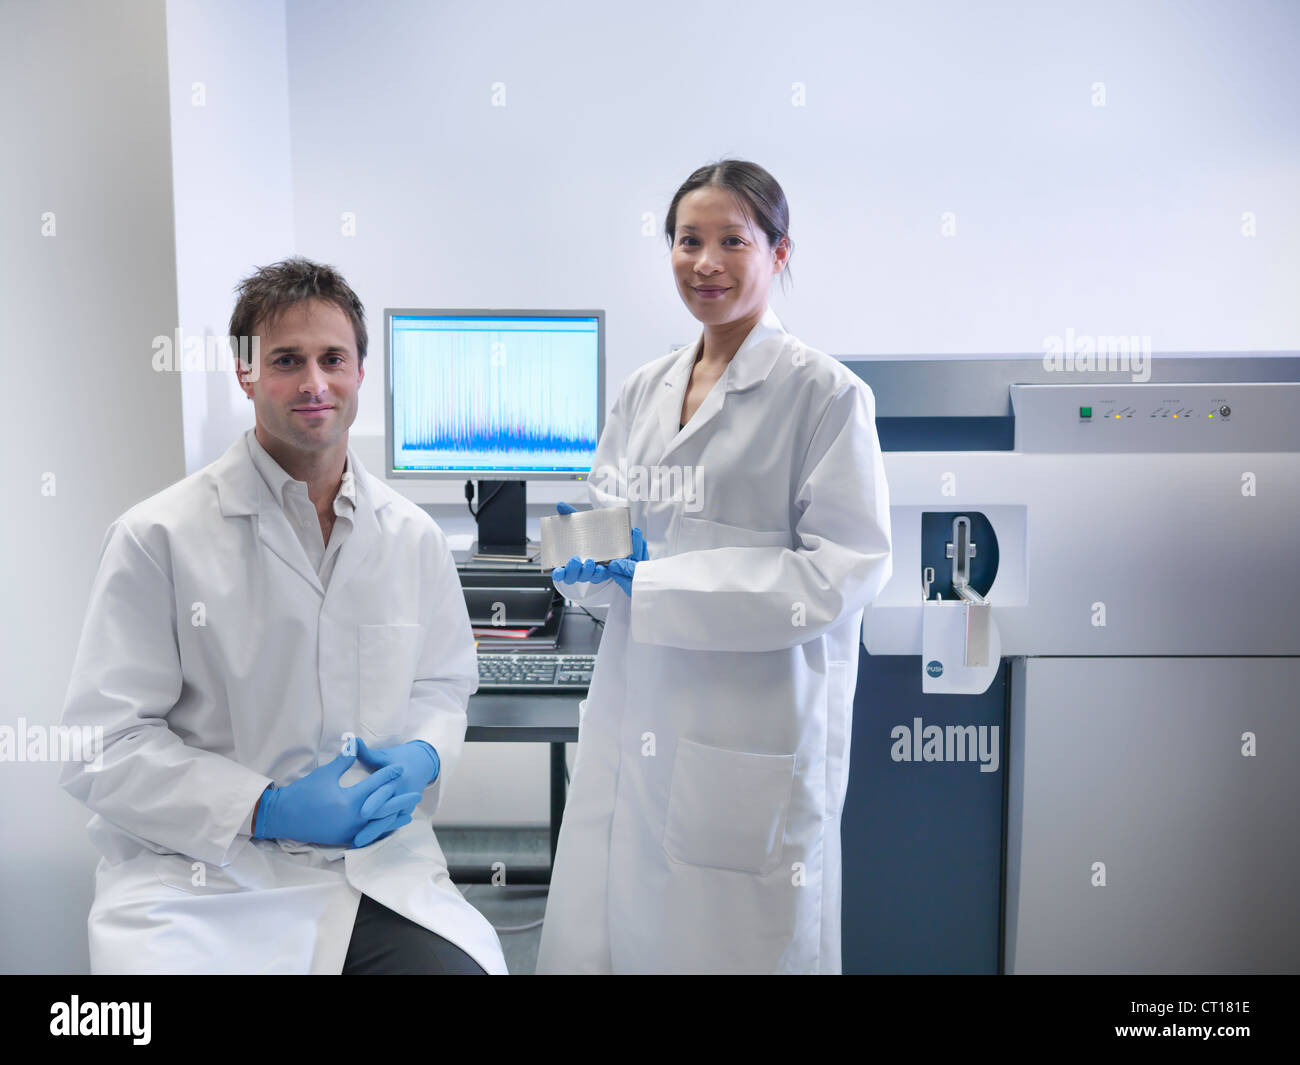 Scientist using computer in lab Stock Photo